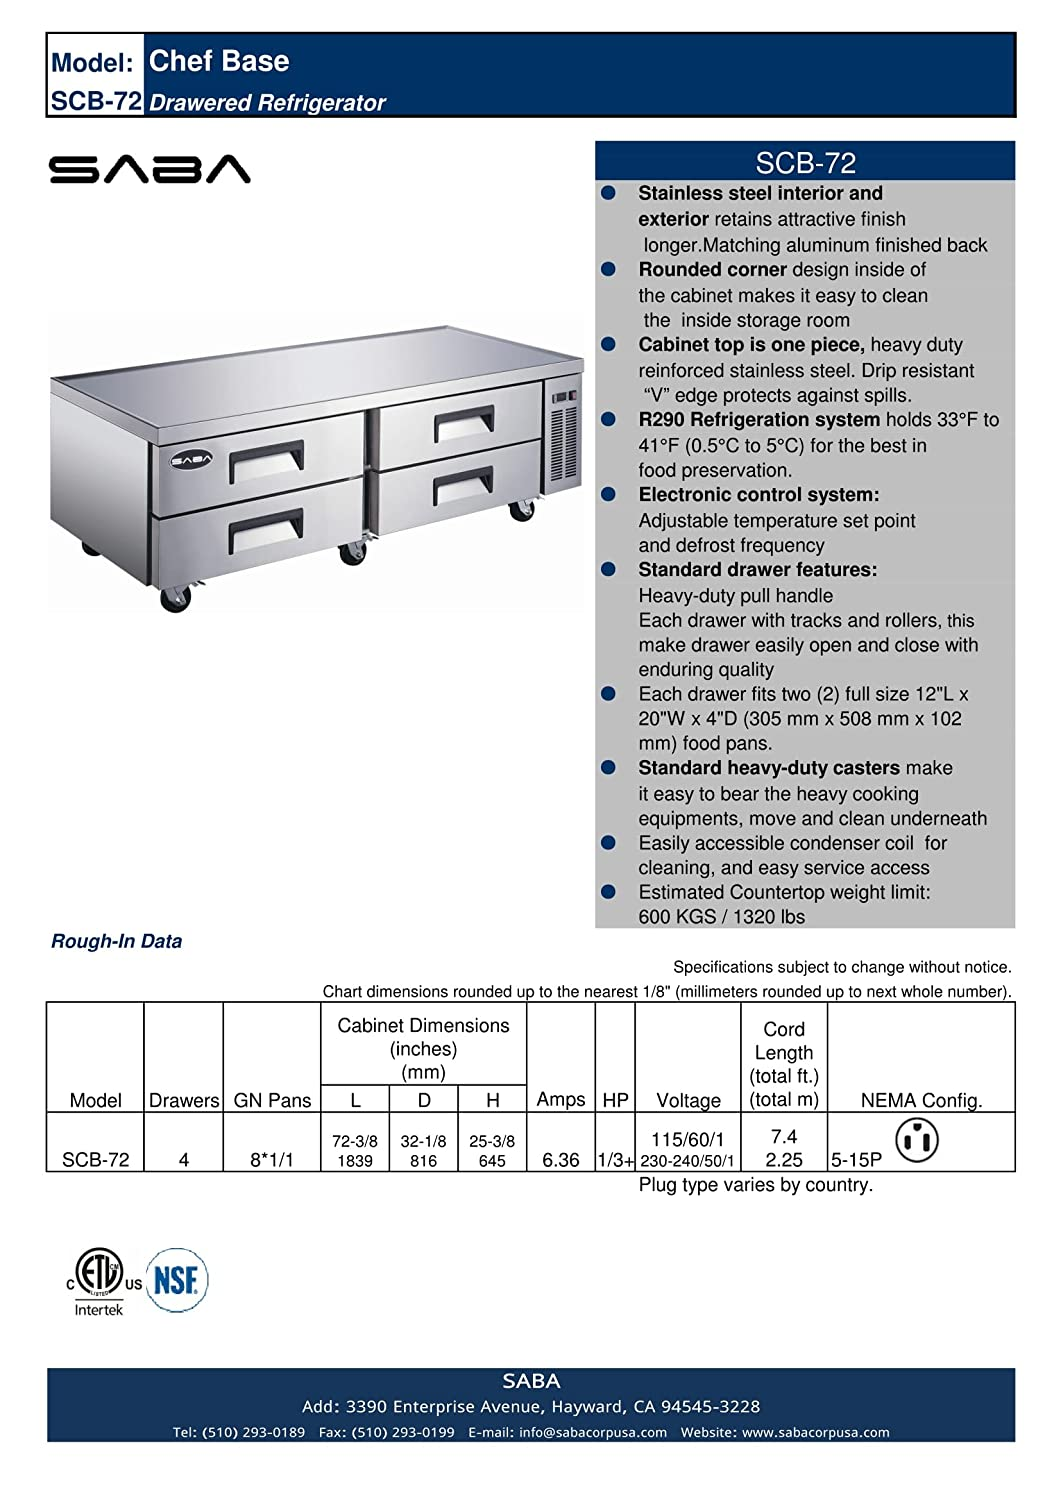 Cb 72 4 Drawer Refrigerated Chef Base Appliances 240 Volt Freezer Schematic